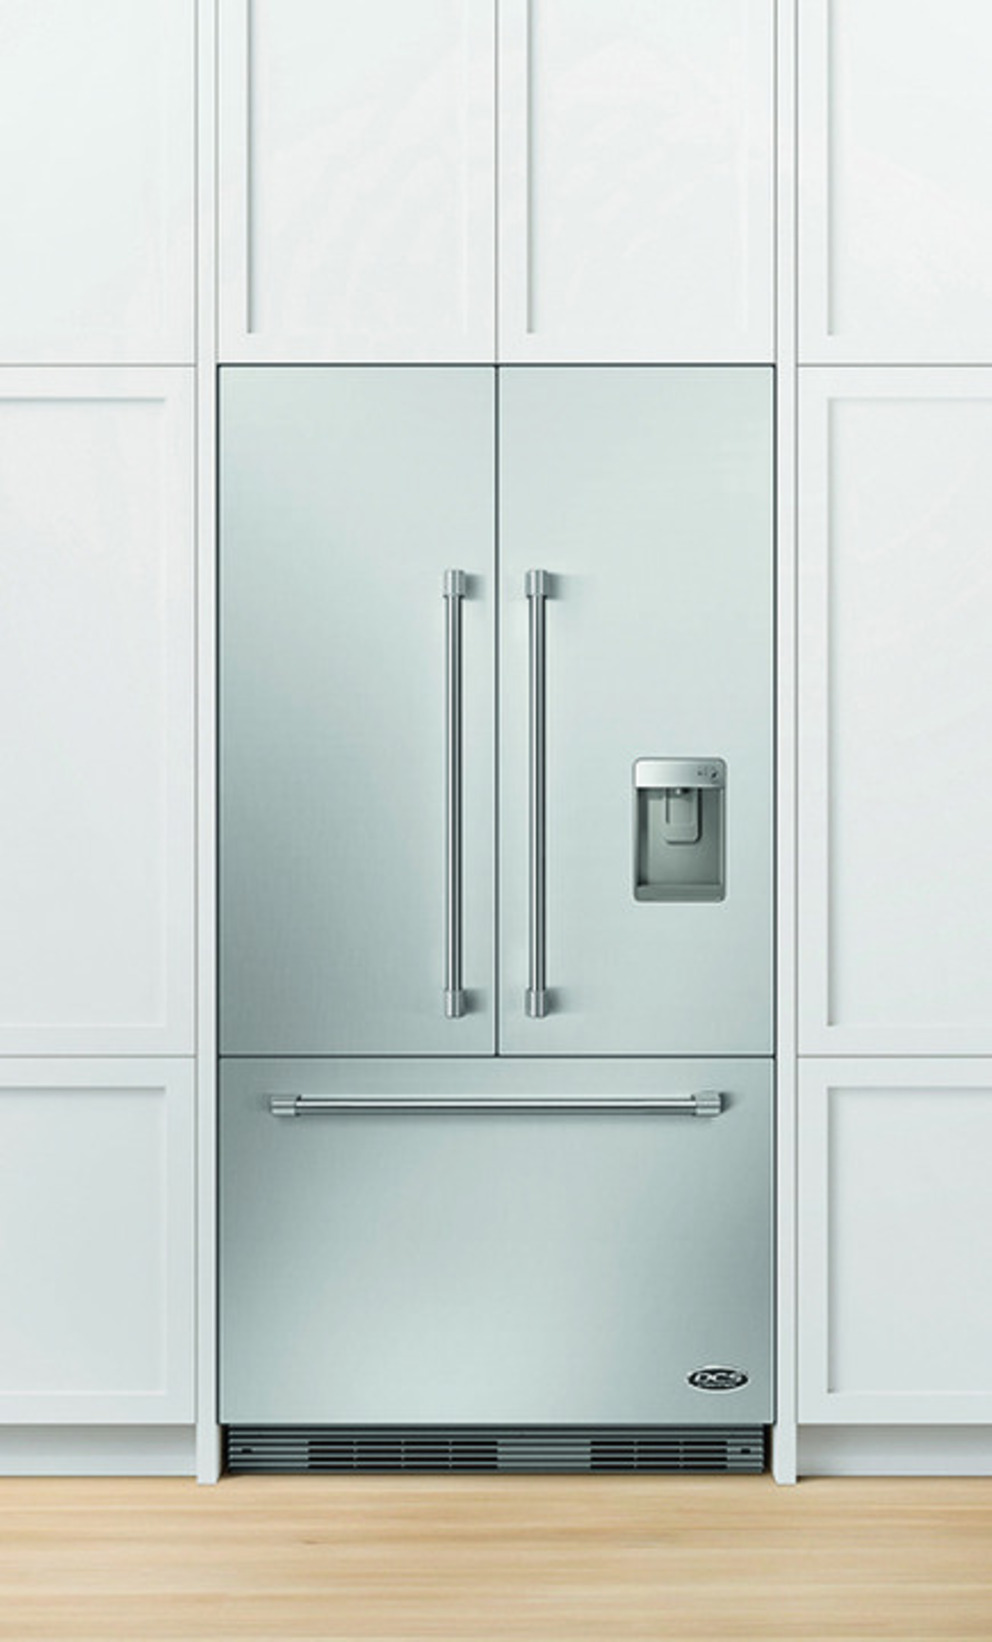 Fridges DCS RS36A72UC1 + RD3672CU (72'' DCS)